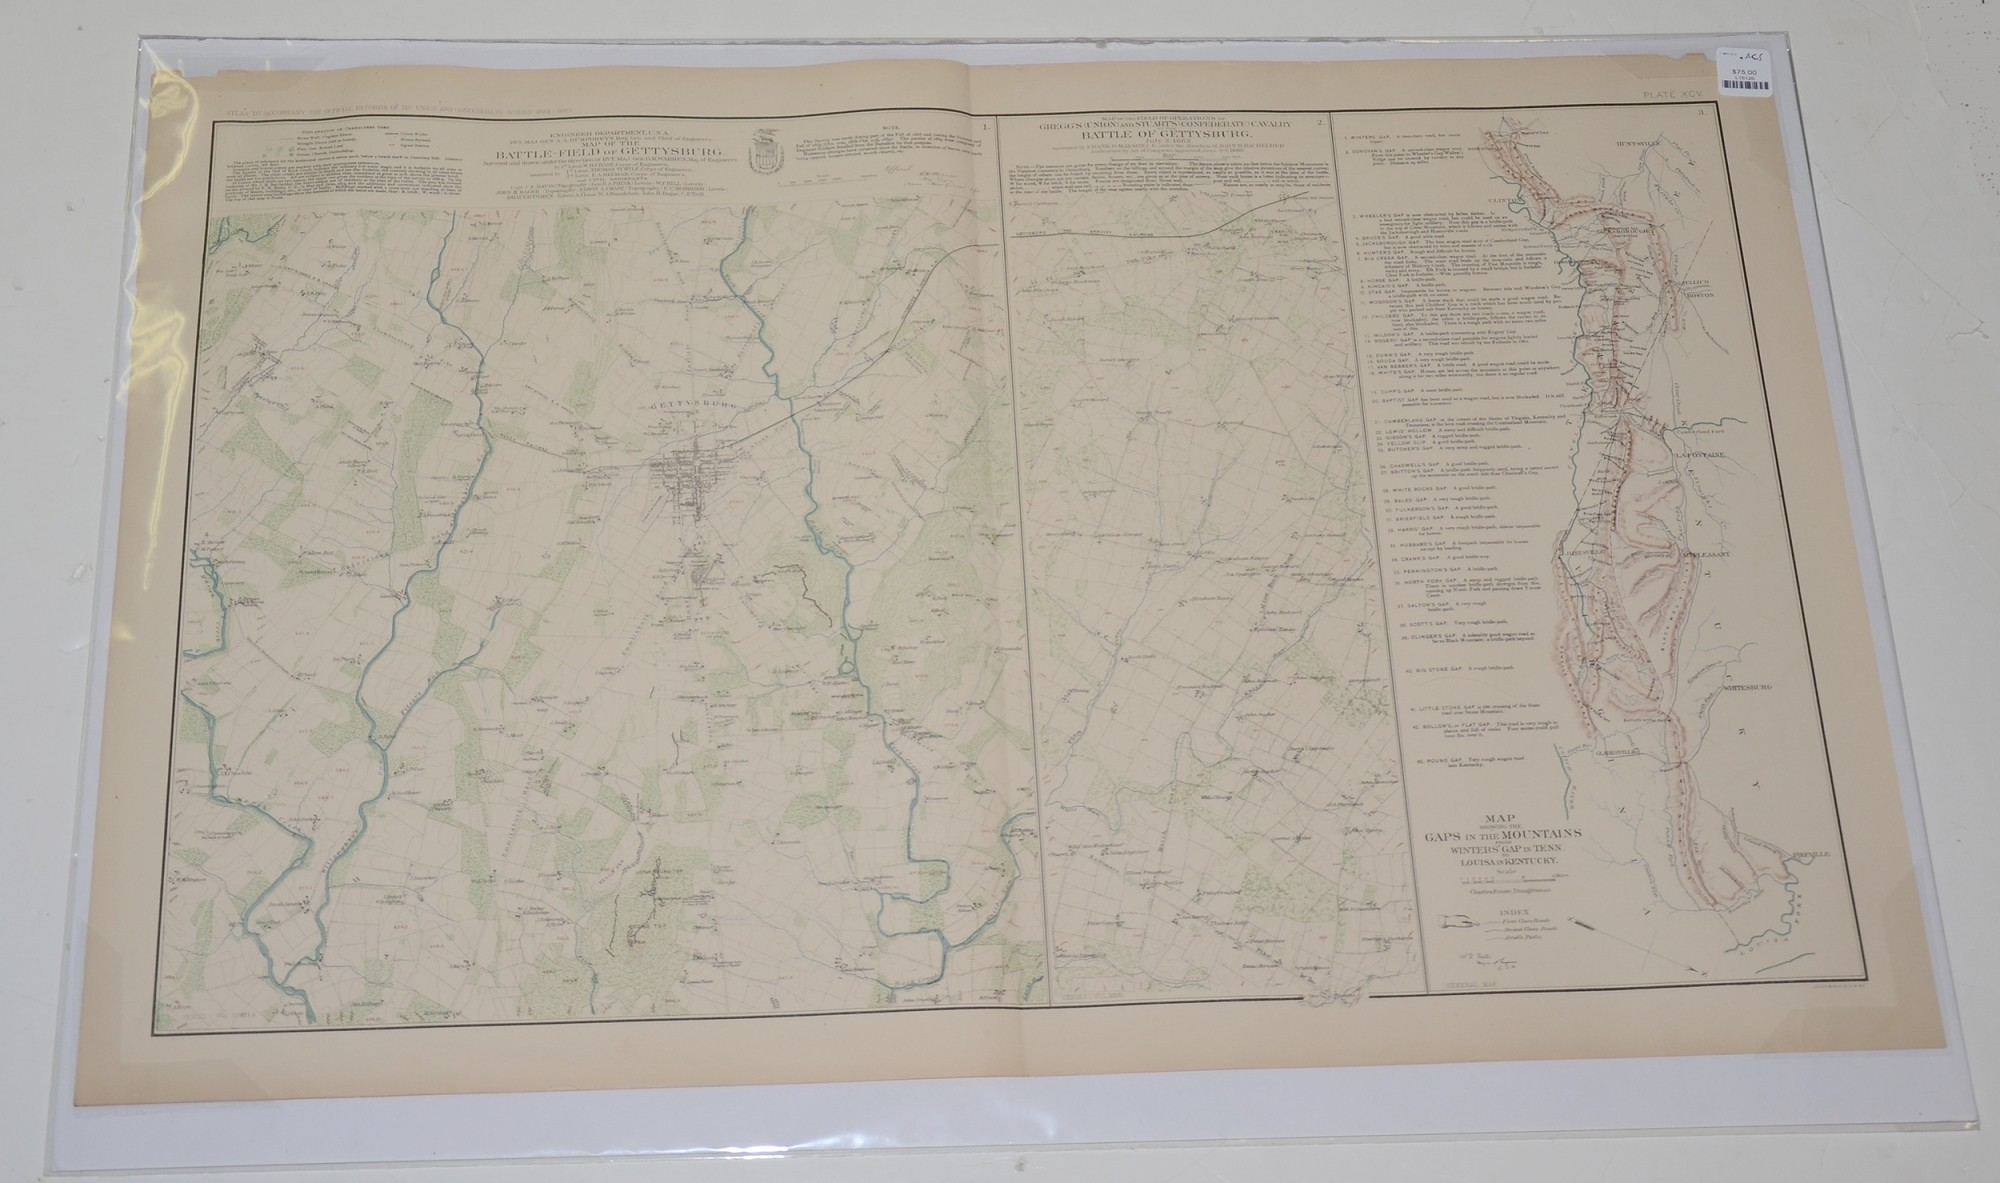 MAP OF GETTYSBURG JULY 3 OPERATIONS FROM ATLAS OF CIVIL WAR